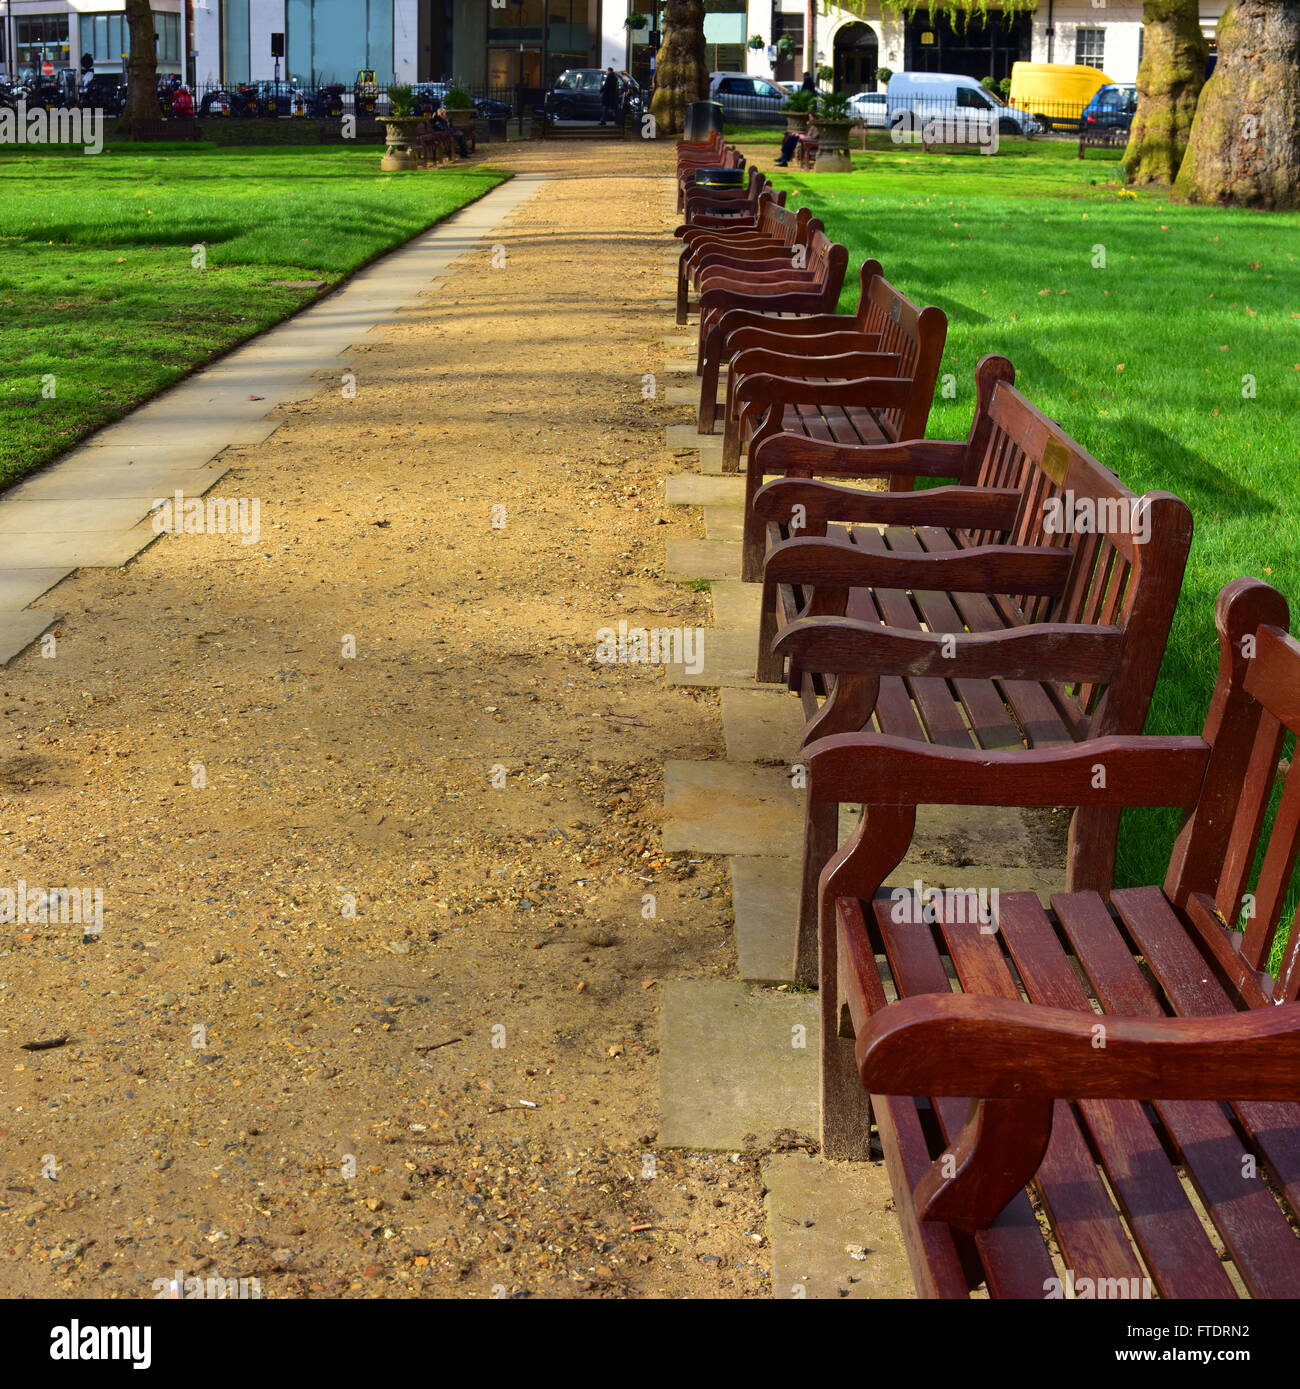 Benches along the main path in Berkeley Square, Mayfair, London. - Stock Image